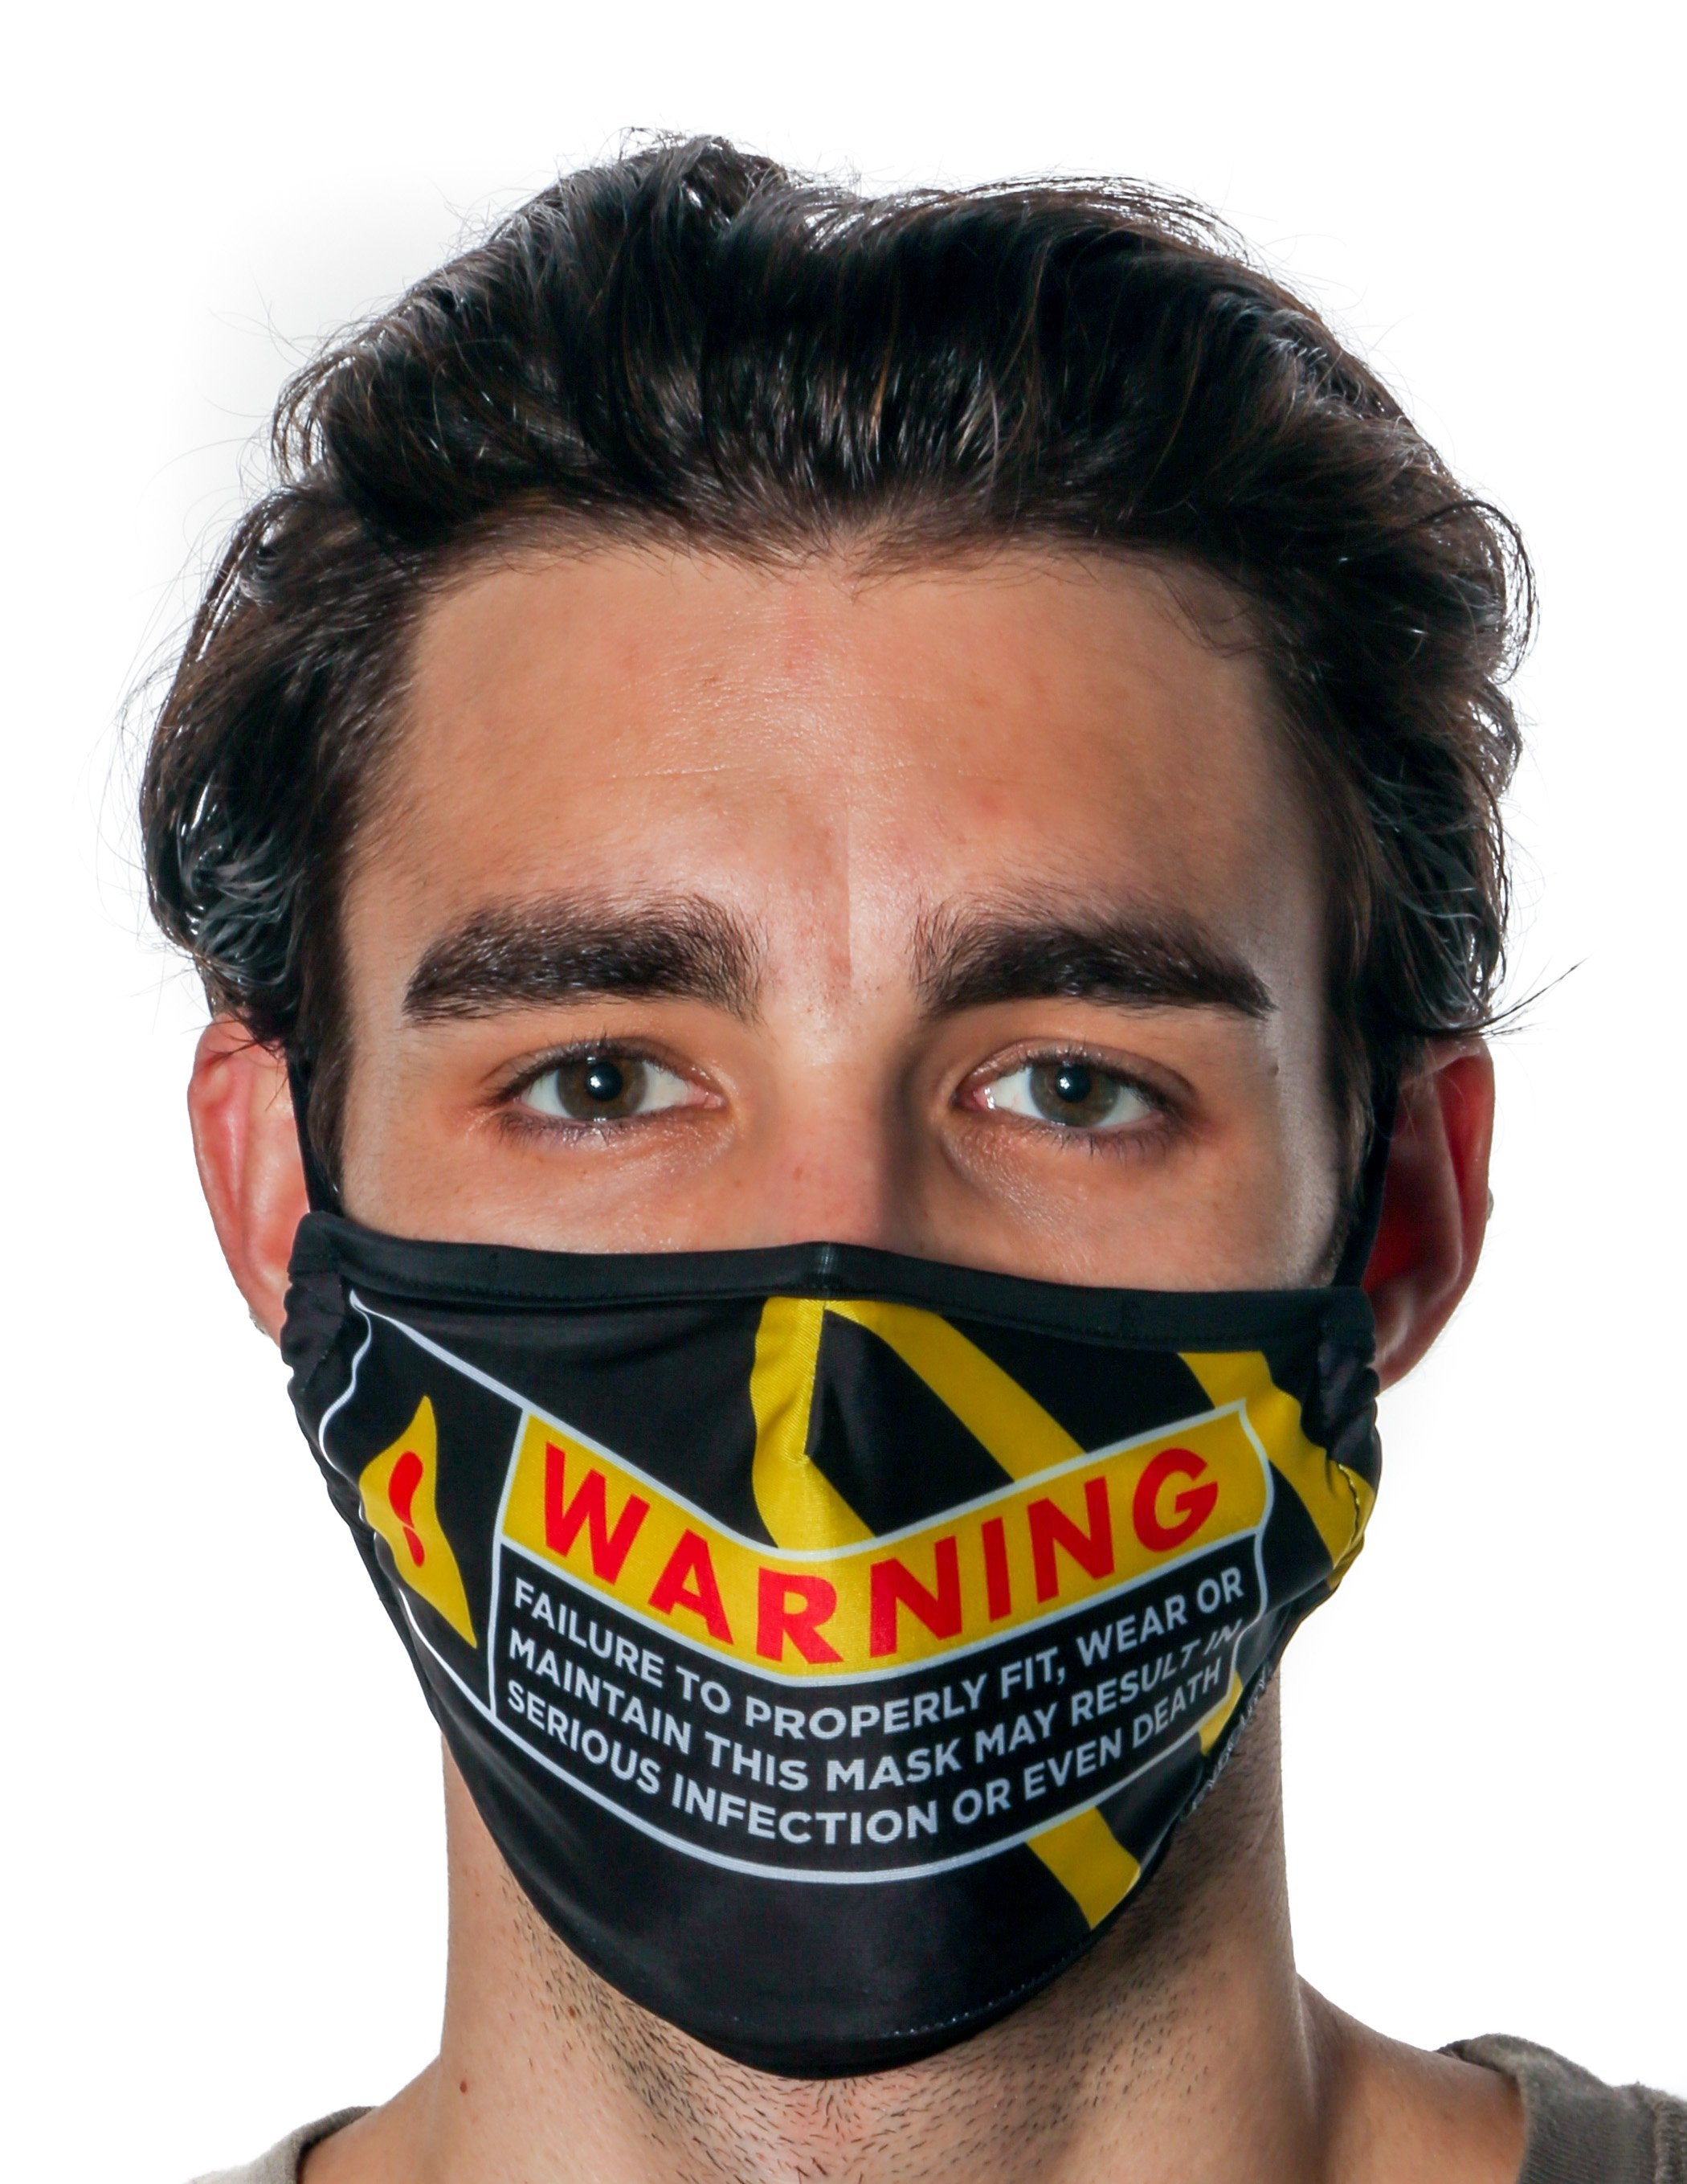 18045: FYDELITY- Premium Protective Fabric Face Covering Mask: Warning